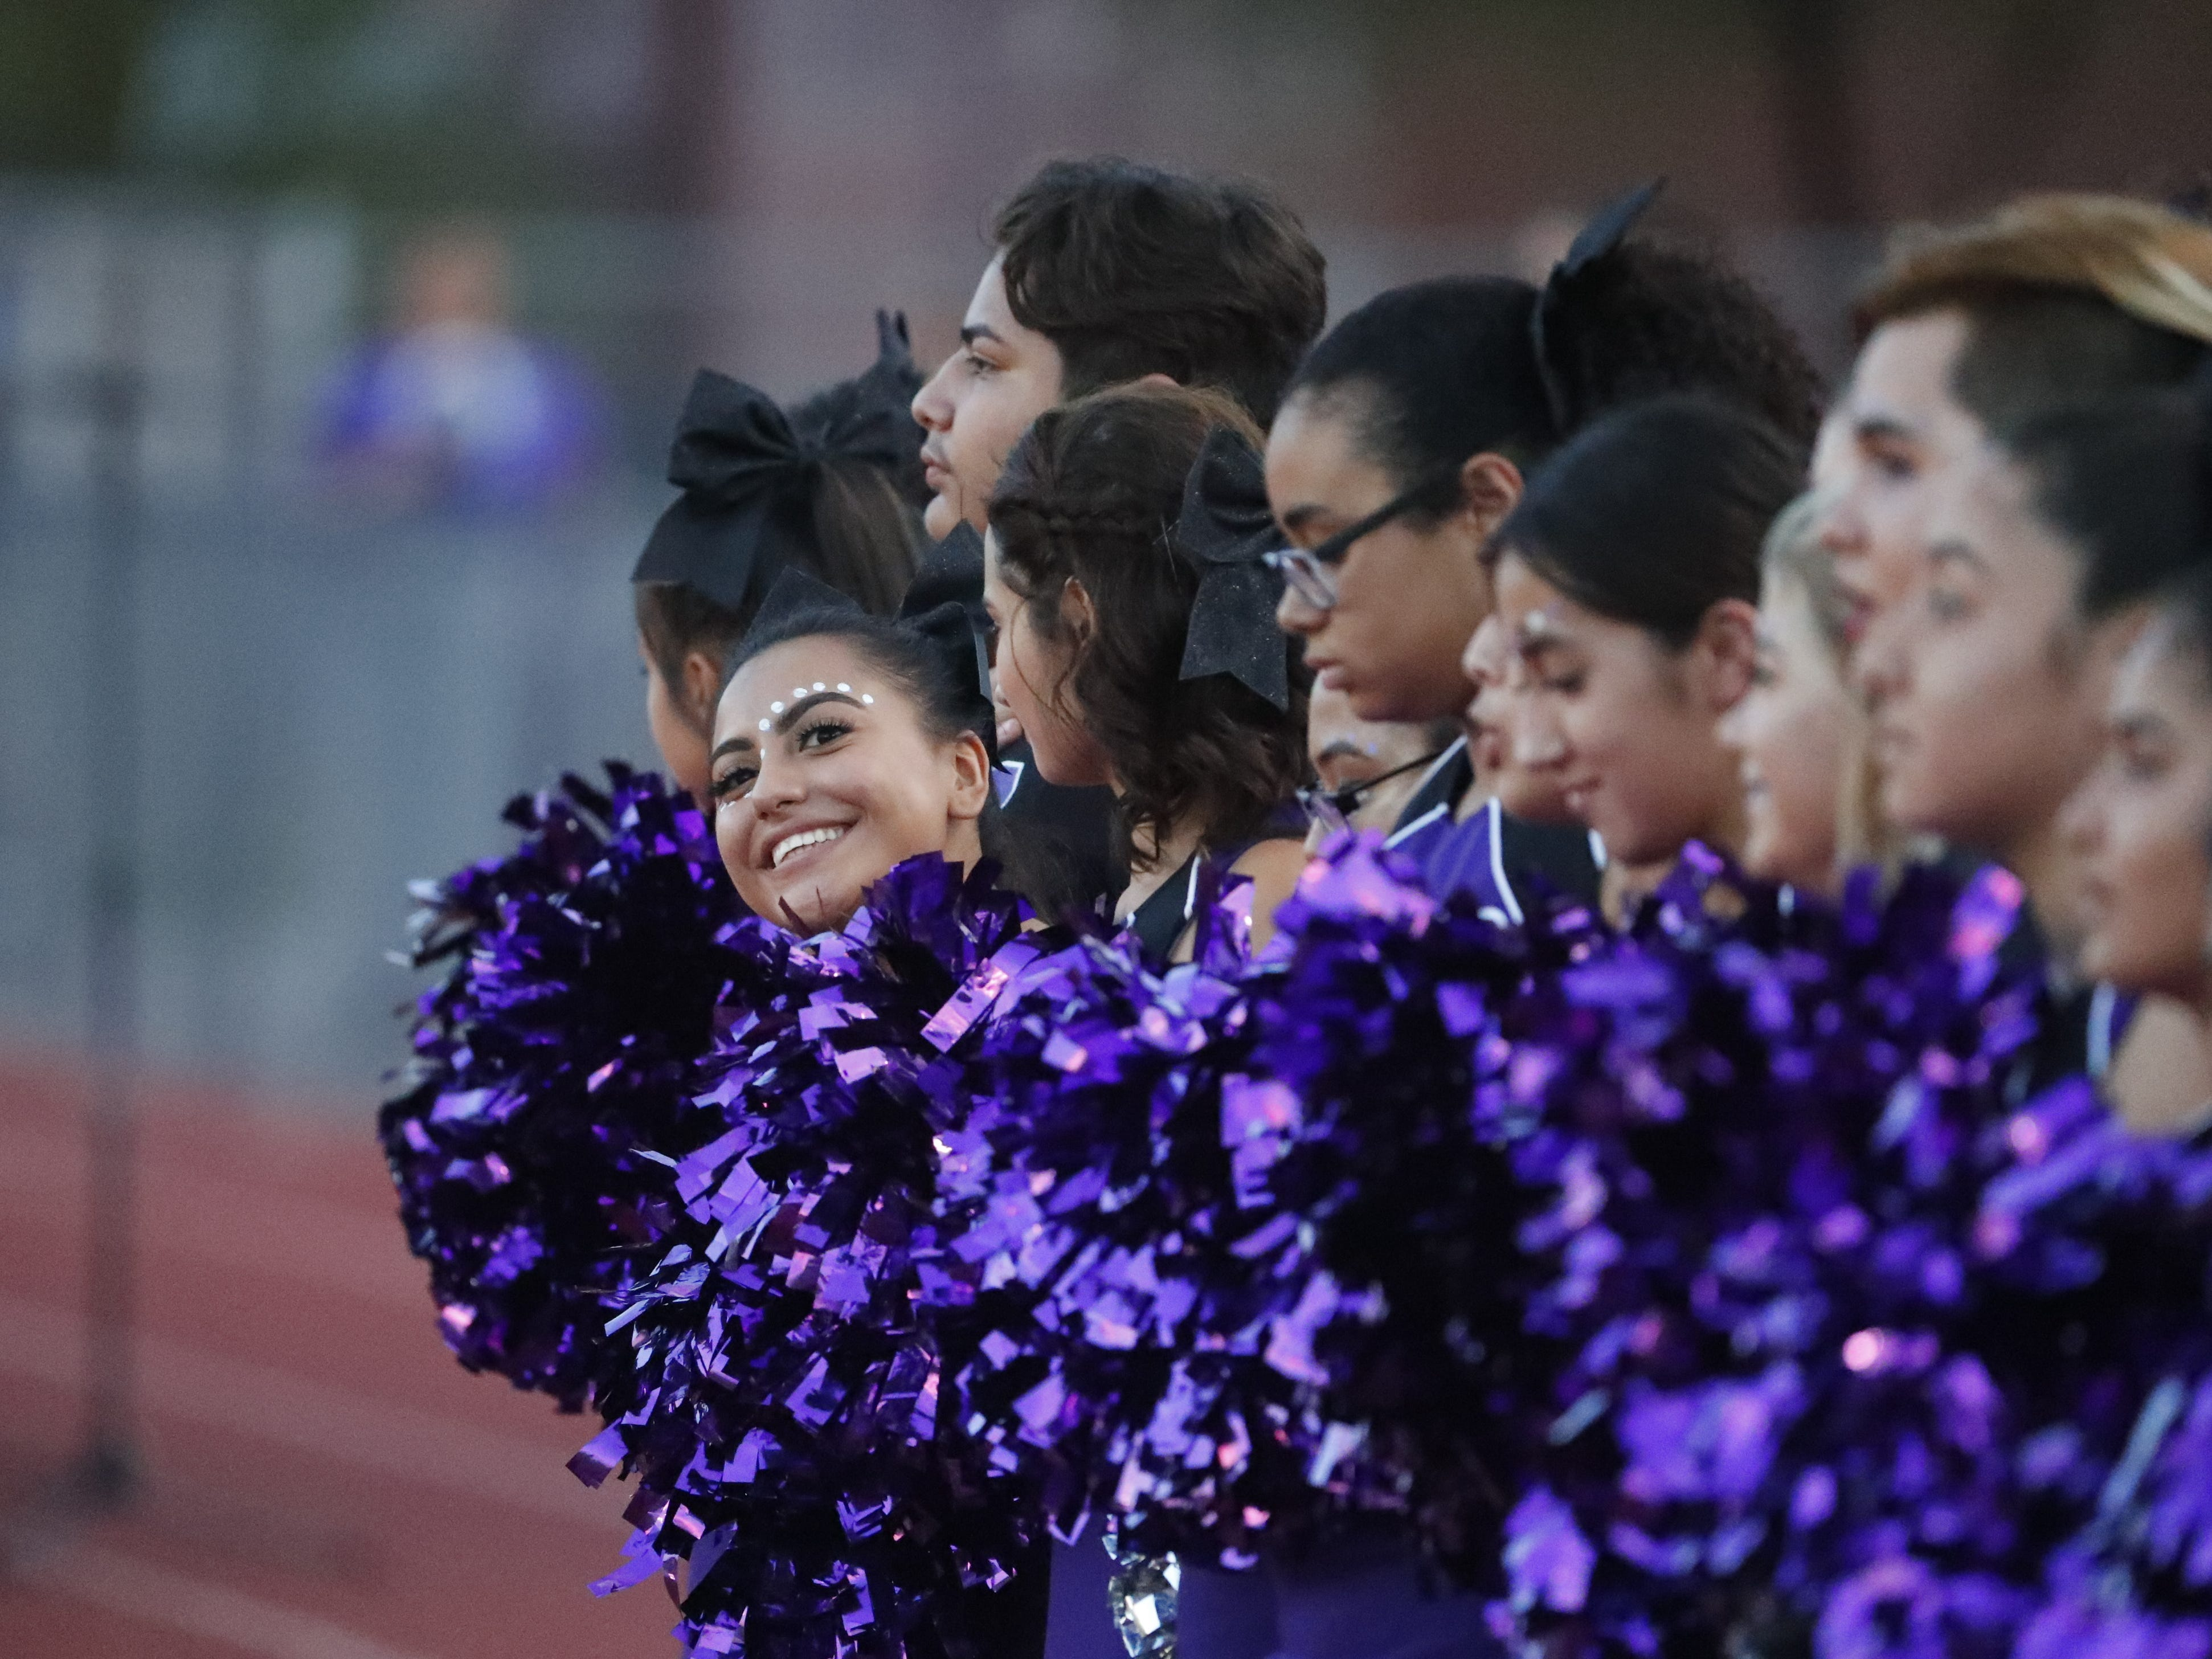 Cesar Chavez cheerleaders joke around before a game against Red Mountain at Cesar Chavez High School in Phoenix, Ariz. on Aug. 23, 2018.